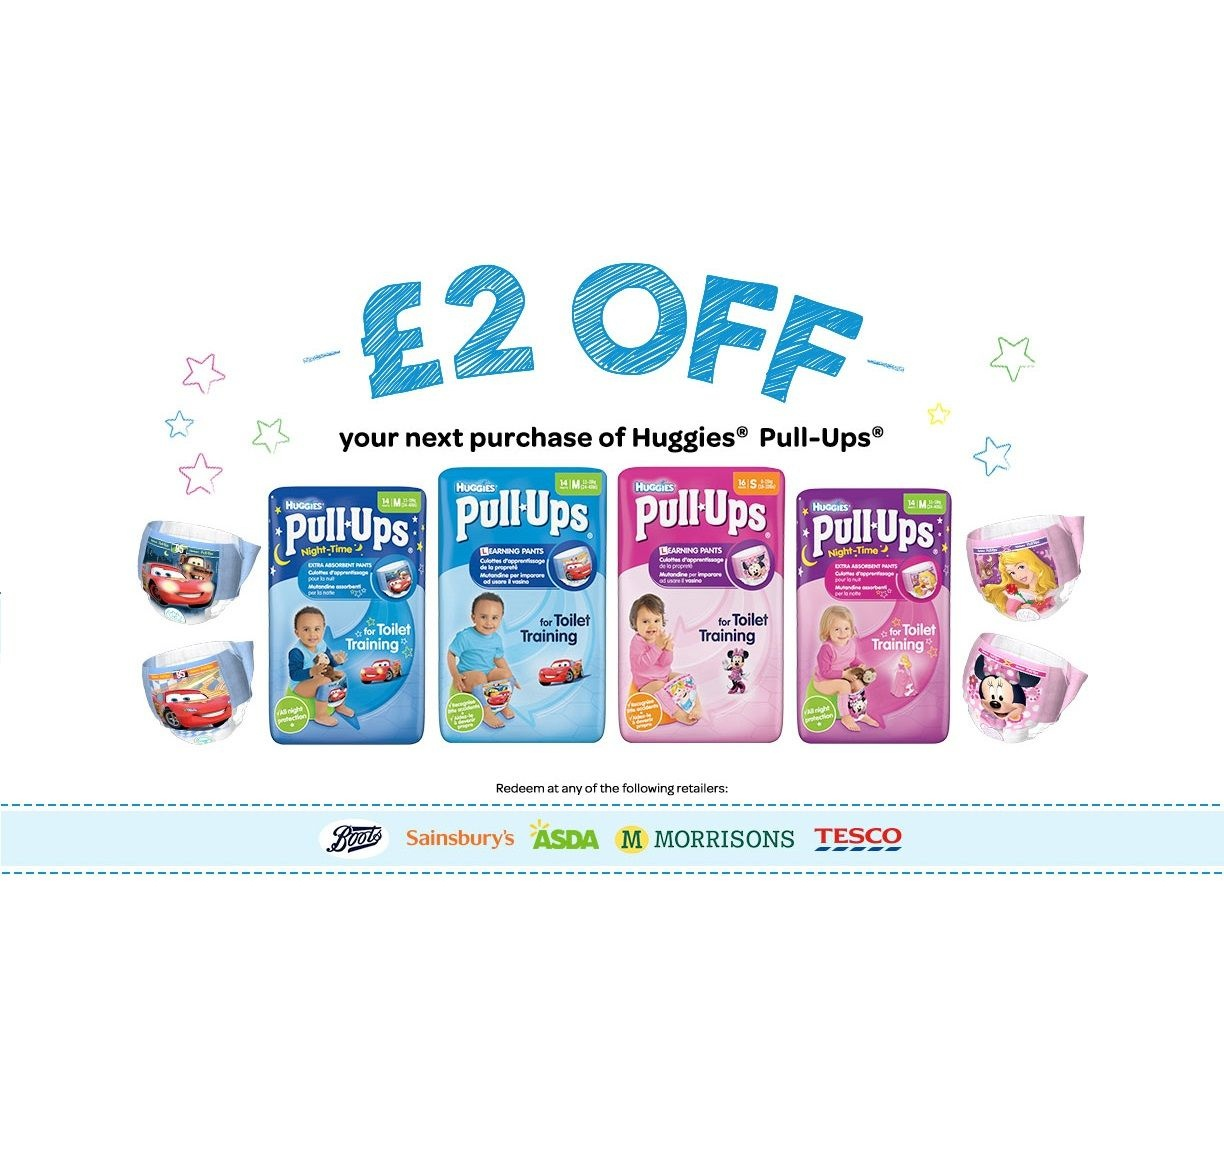 Voucher Code £2 Off Huggies Pull Ups | Freebies Of The Day Uk - Free Printable Coupons For Huggies Pull Ups